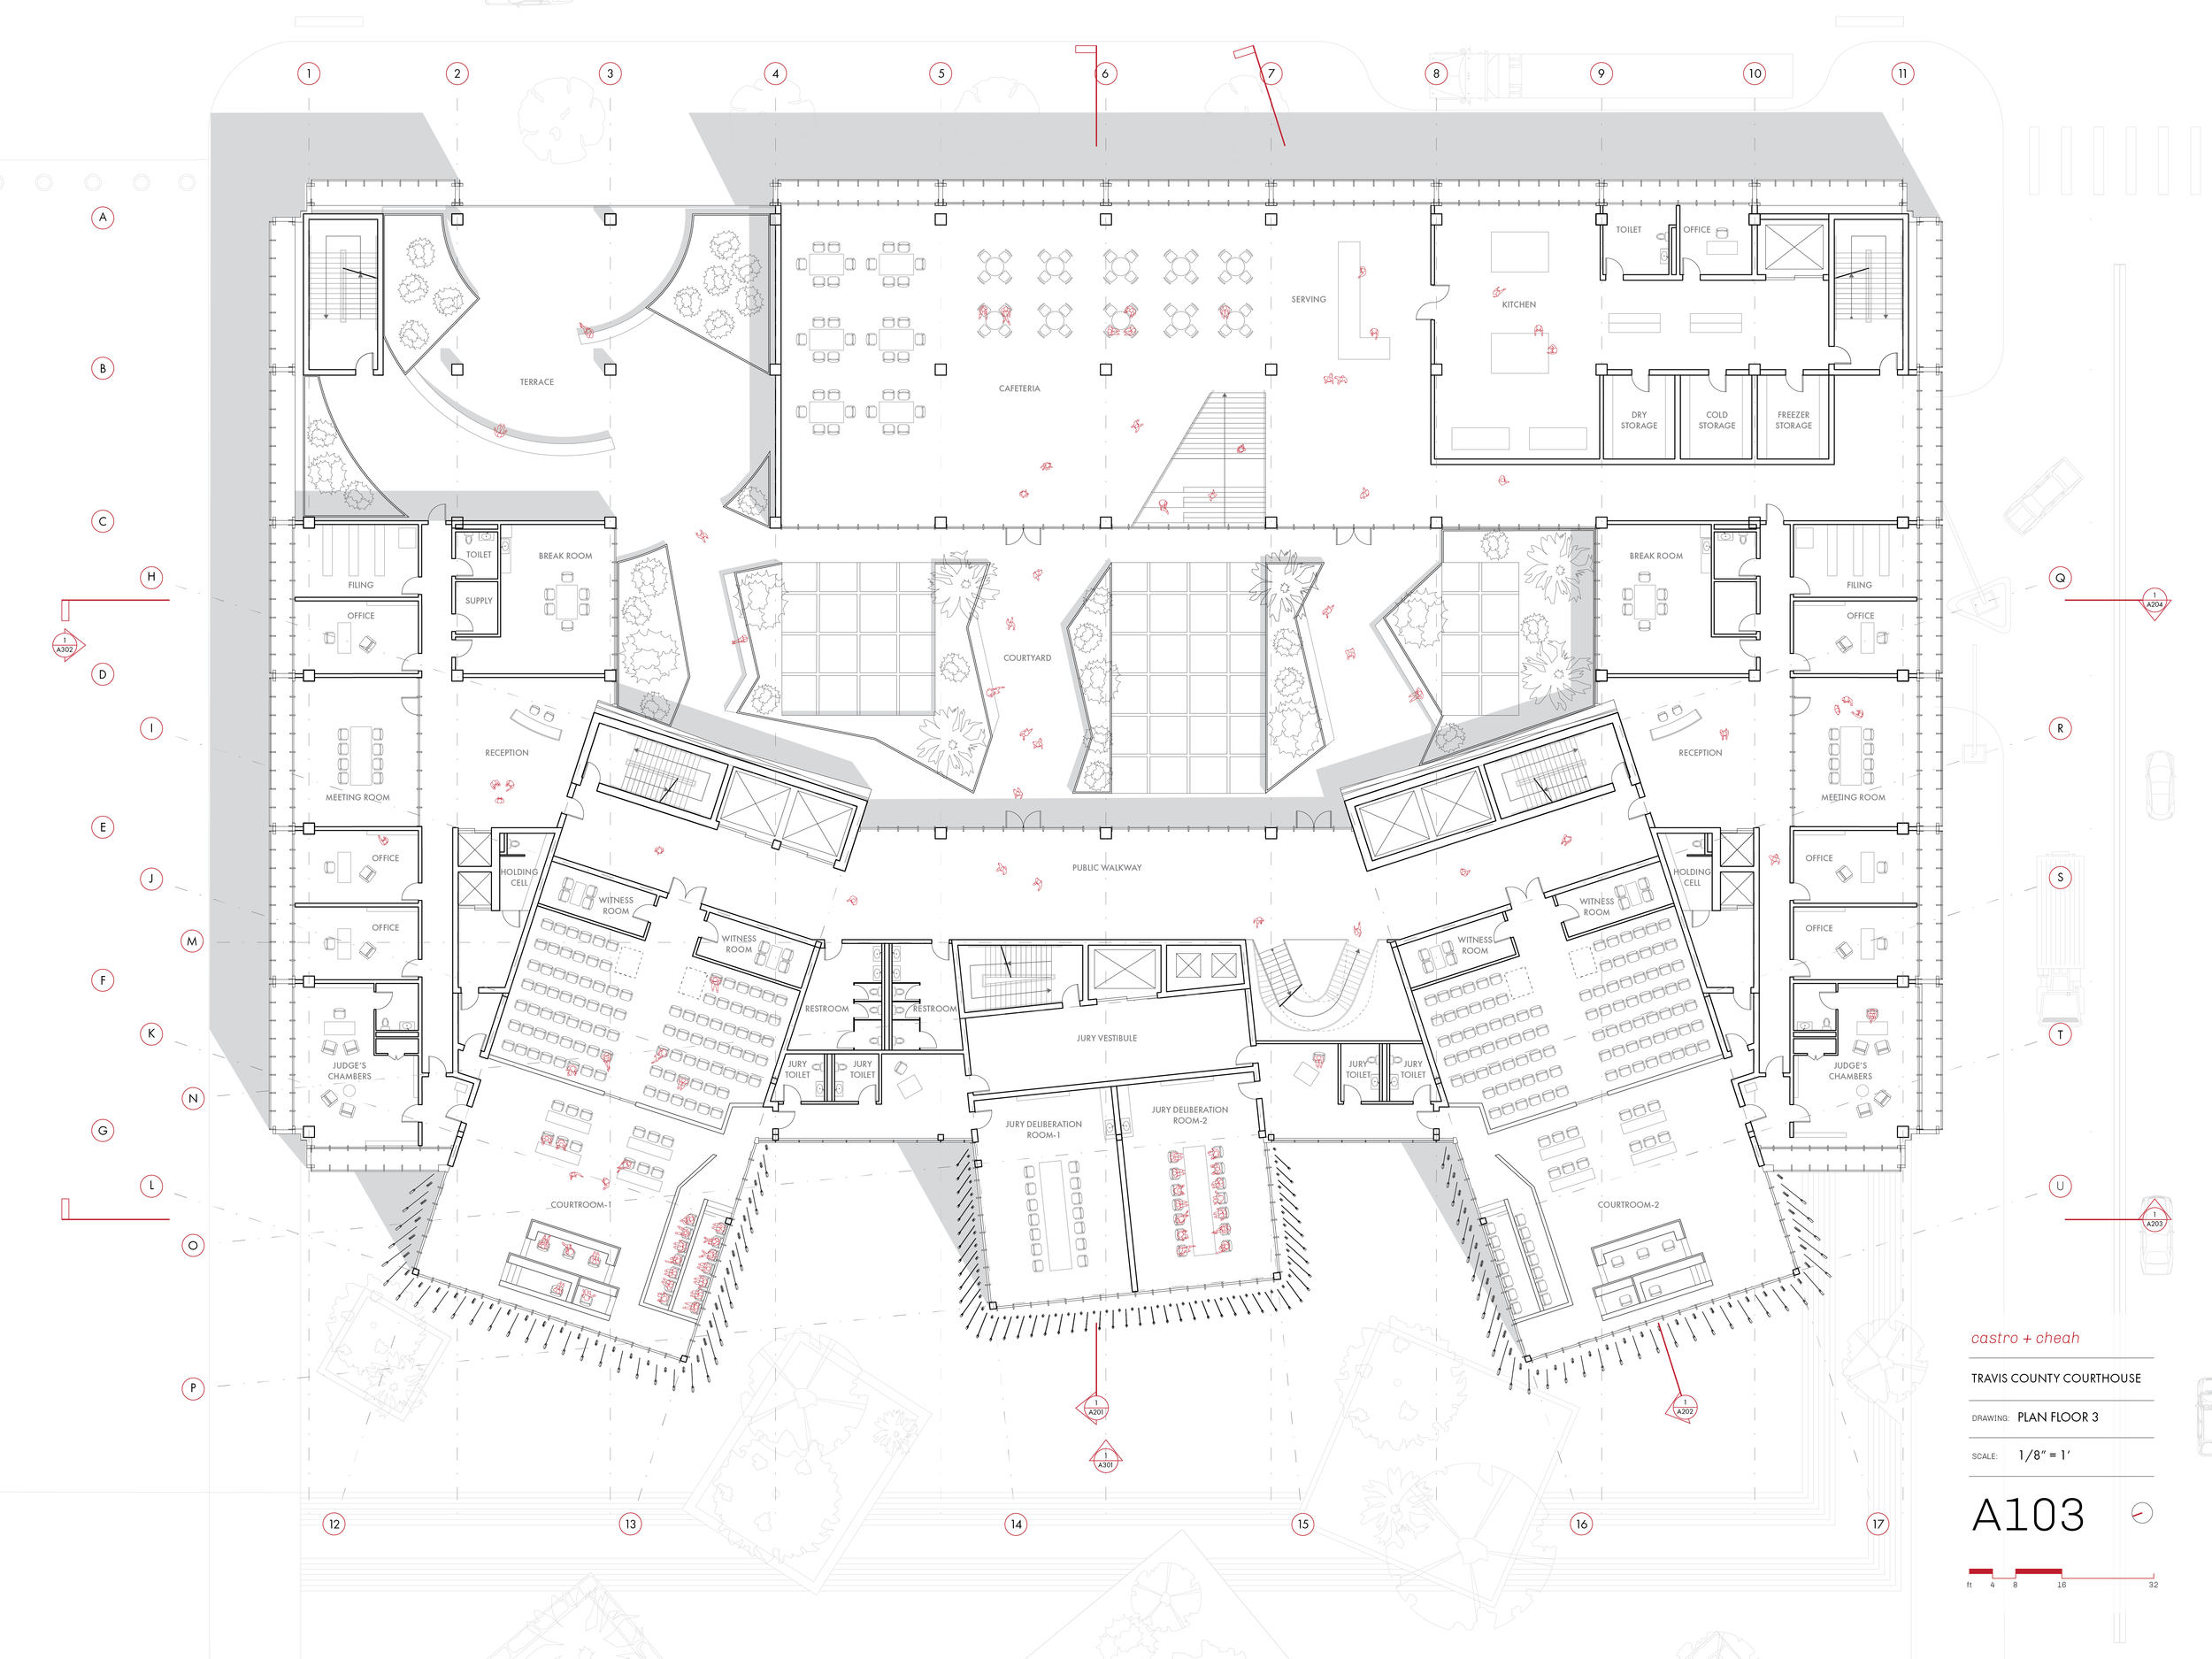 A103_FloorPlan03-01.png